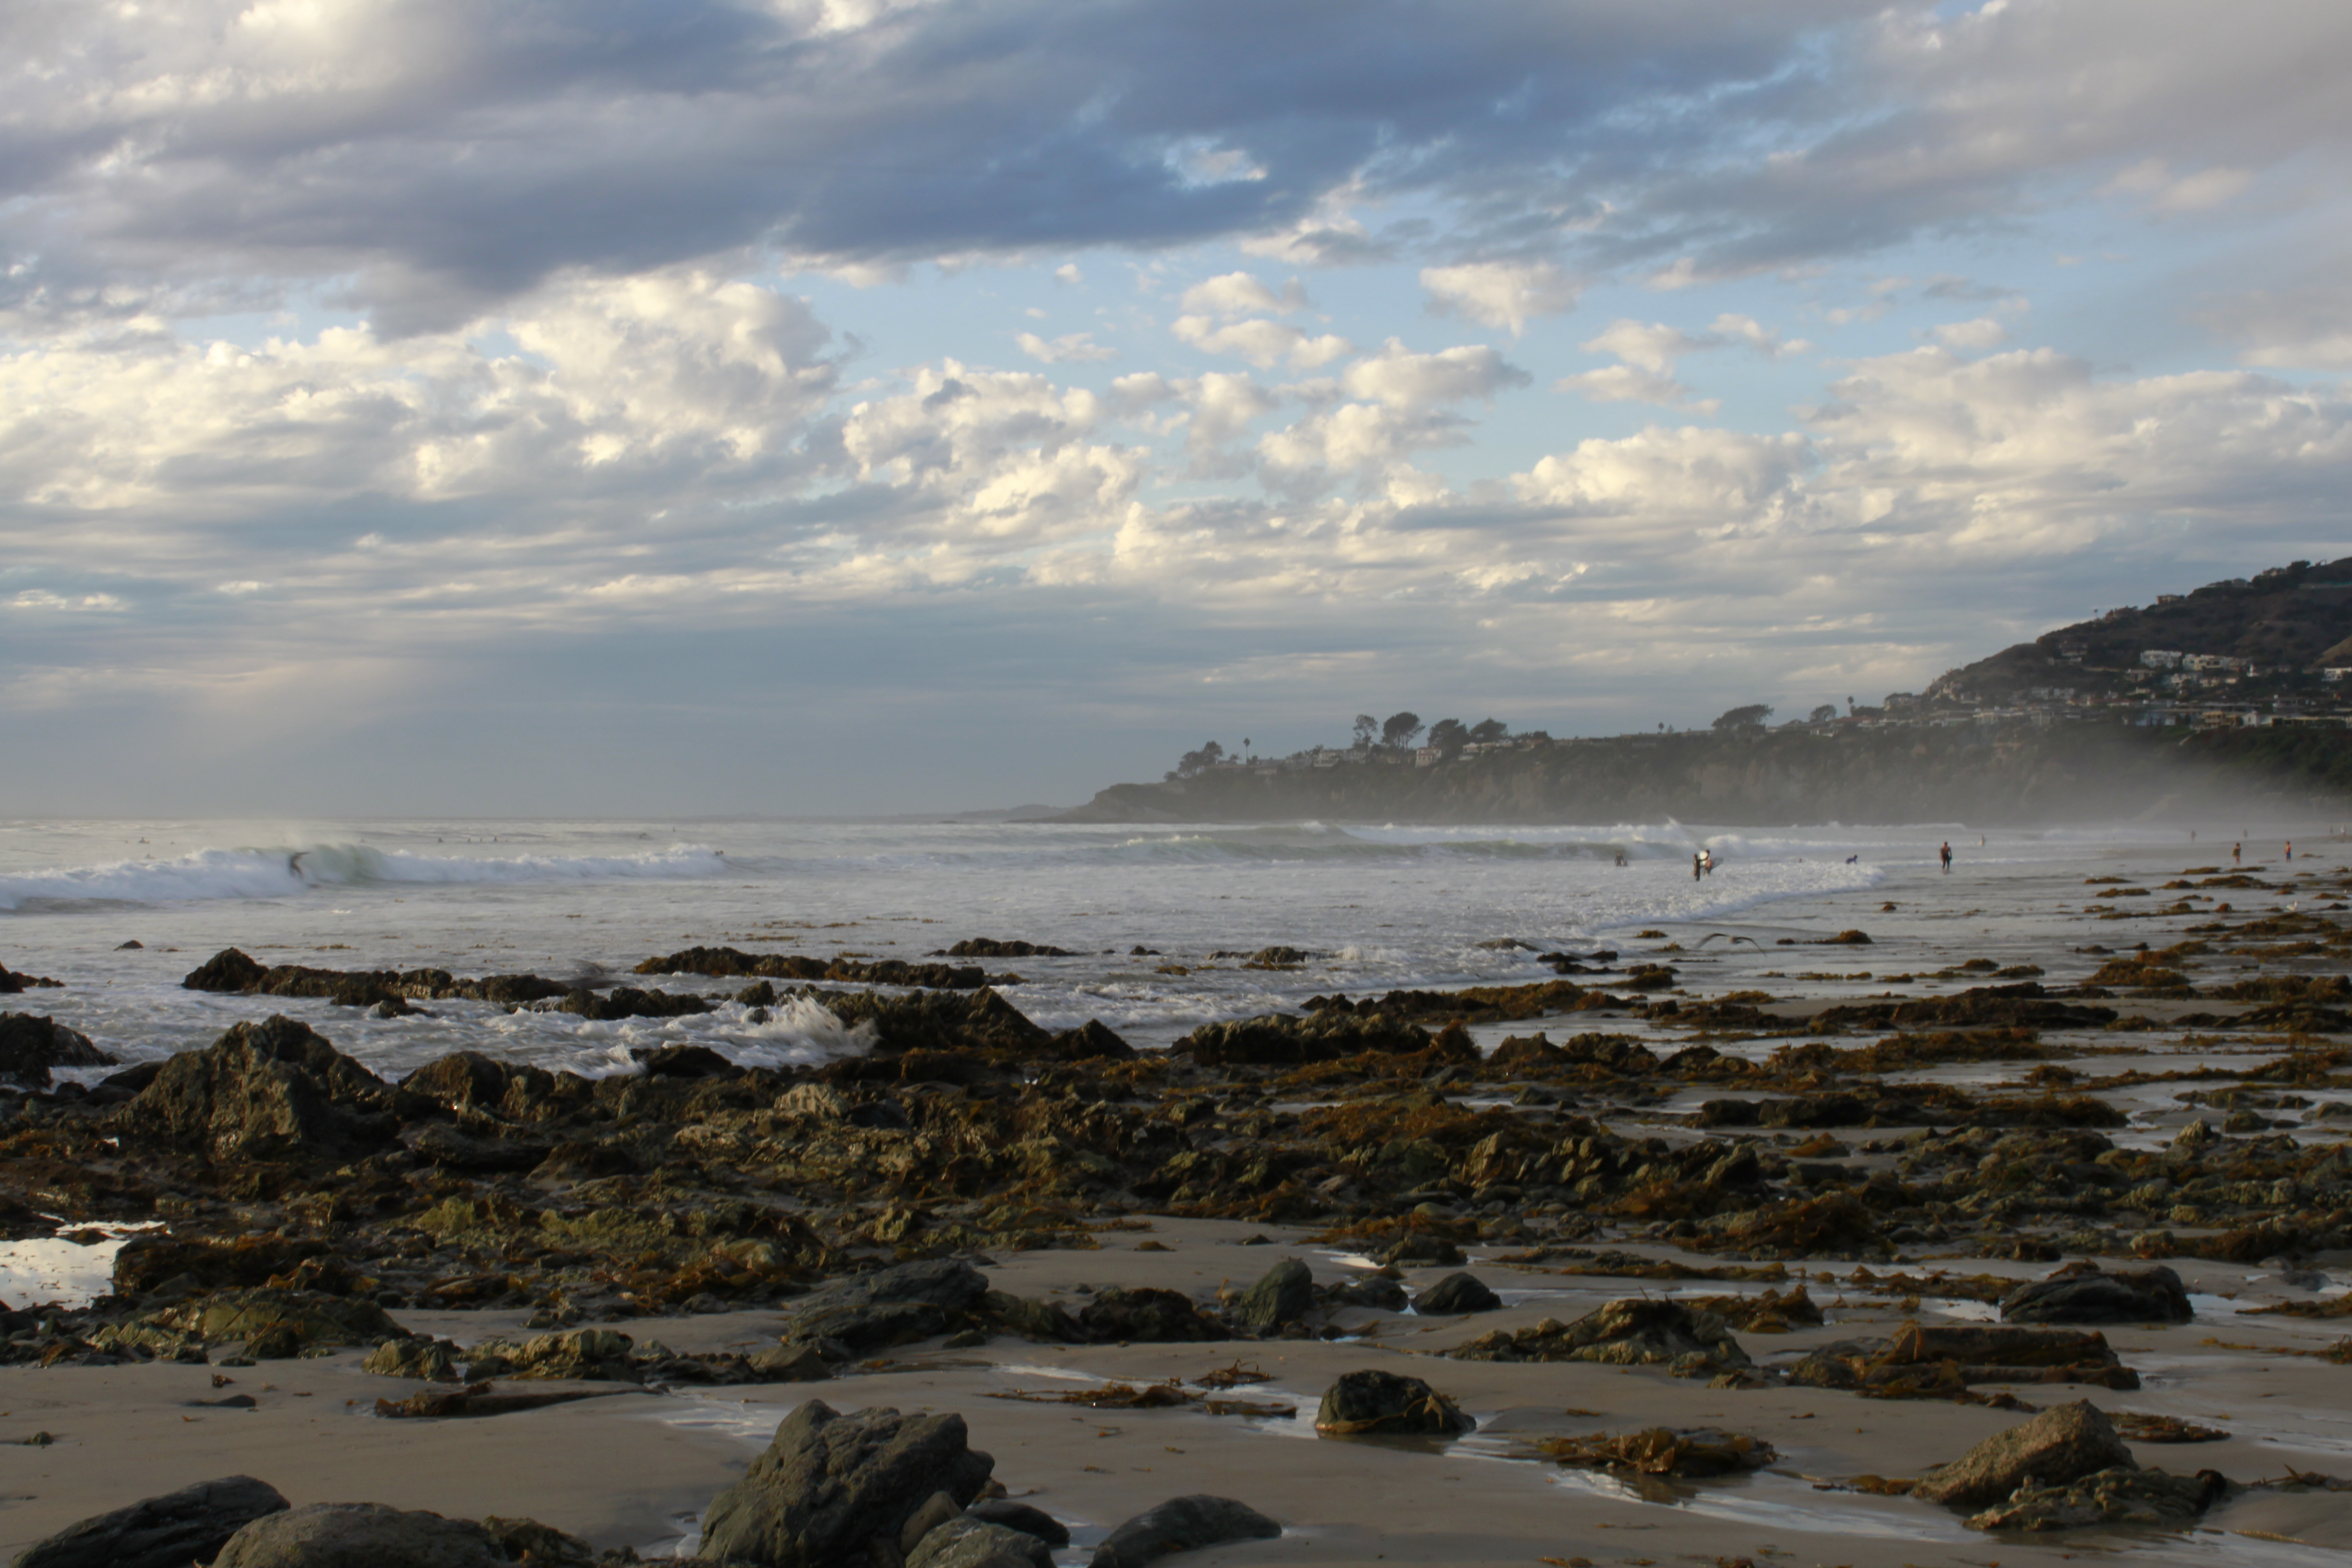 Salt Creek's kelp beds end up on the sand sometimes.